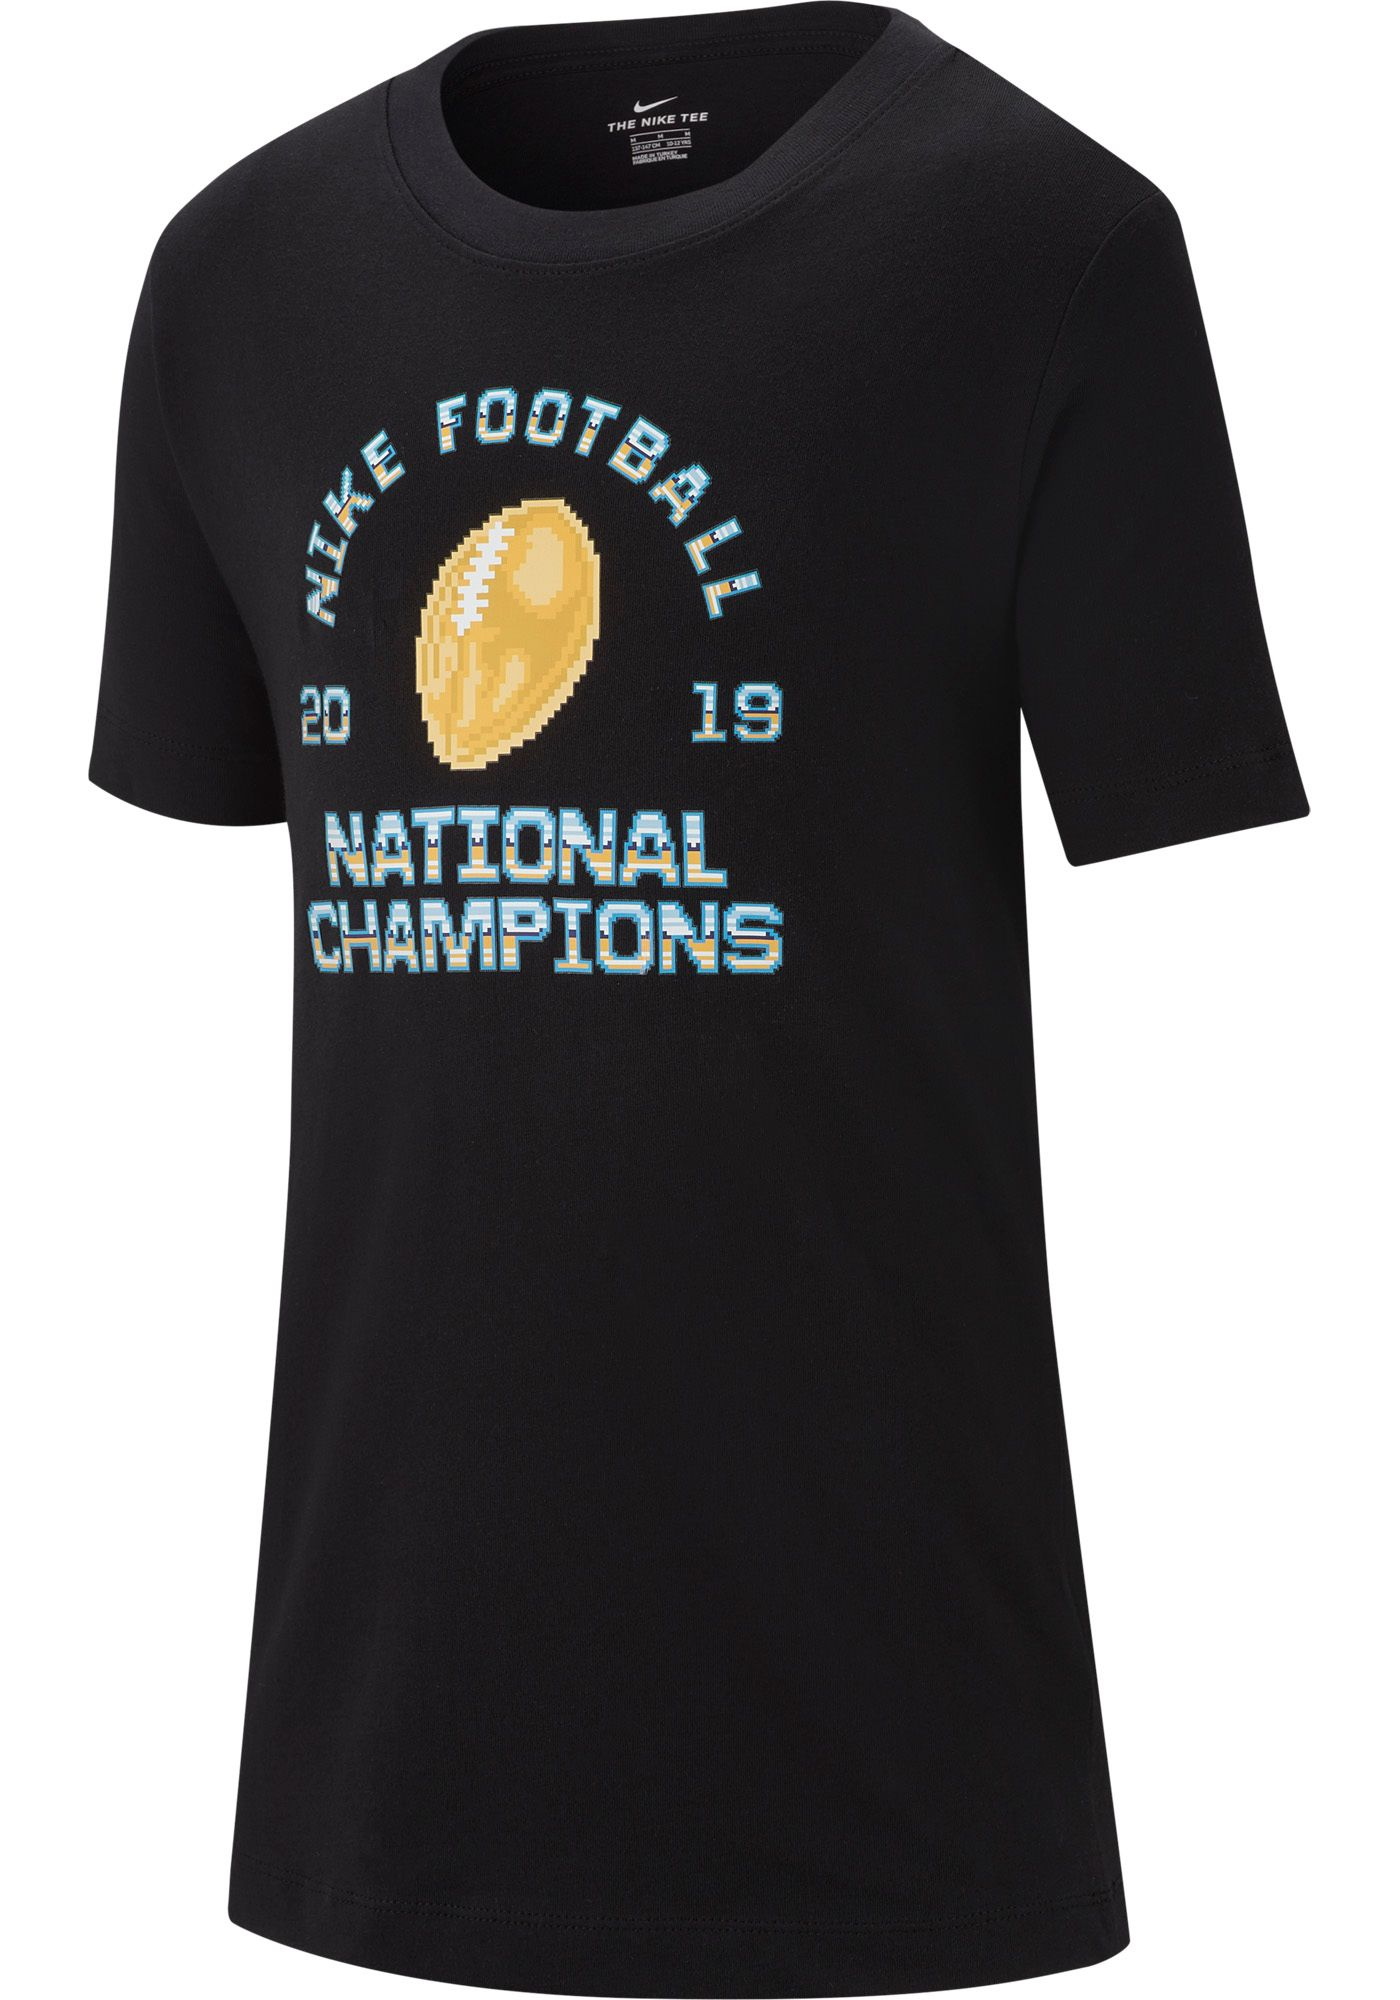 Nike Boys' Sportswear Back to Back Champs Graphic Tee